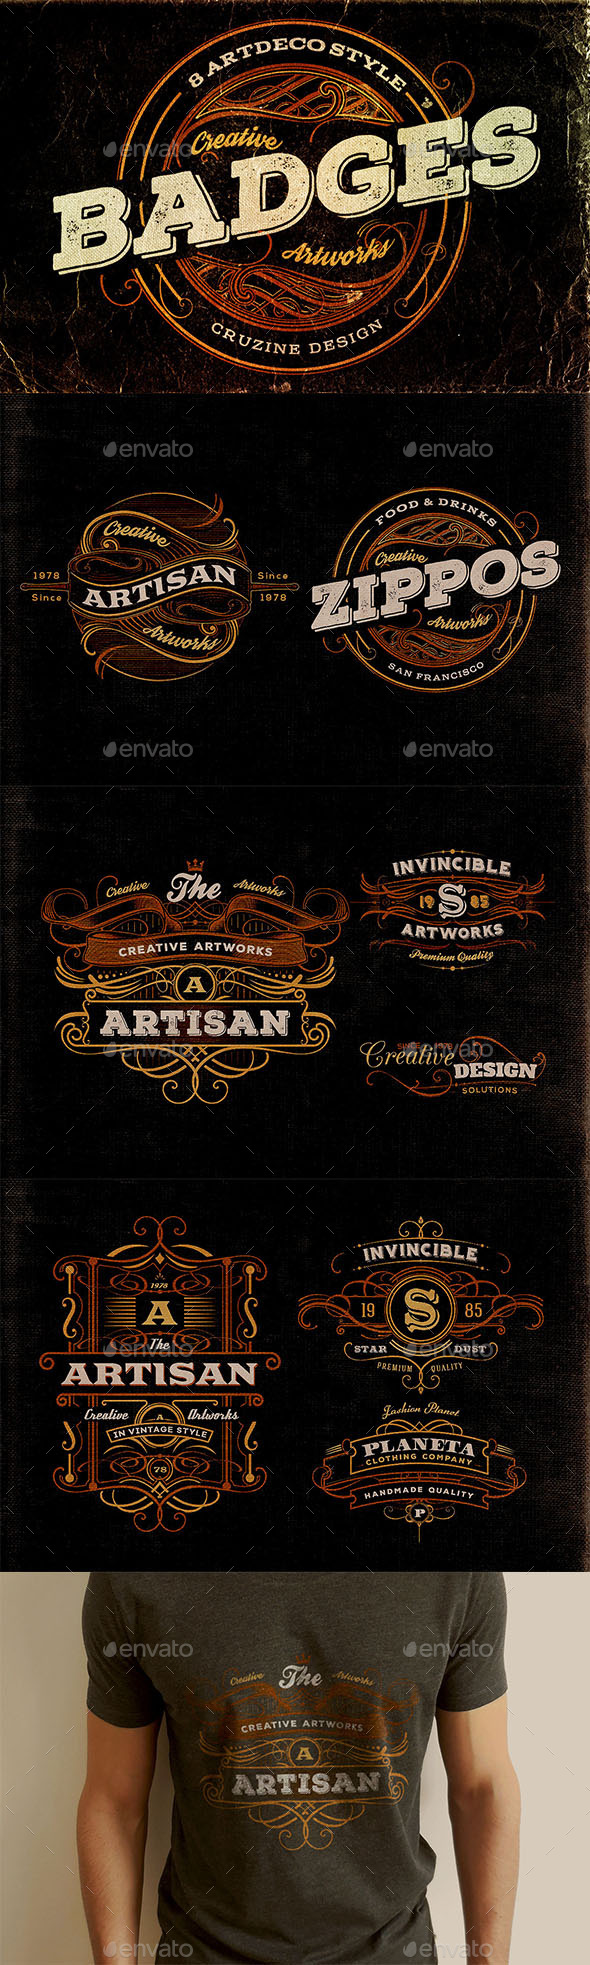 8 Artdeco Style Badges - Badges & Stickers Web Elements